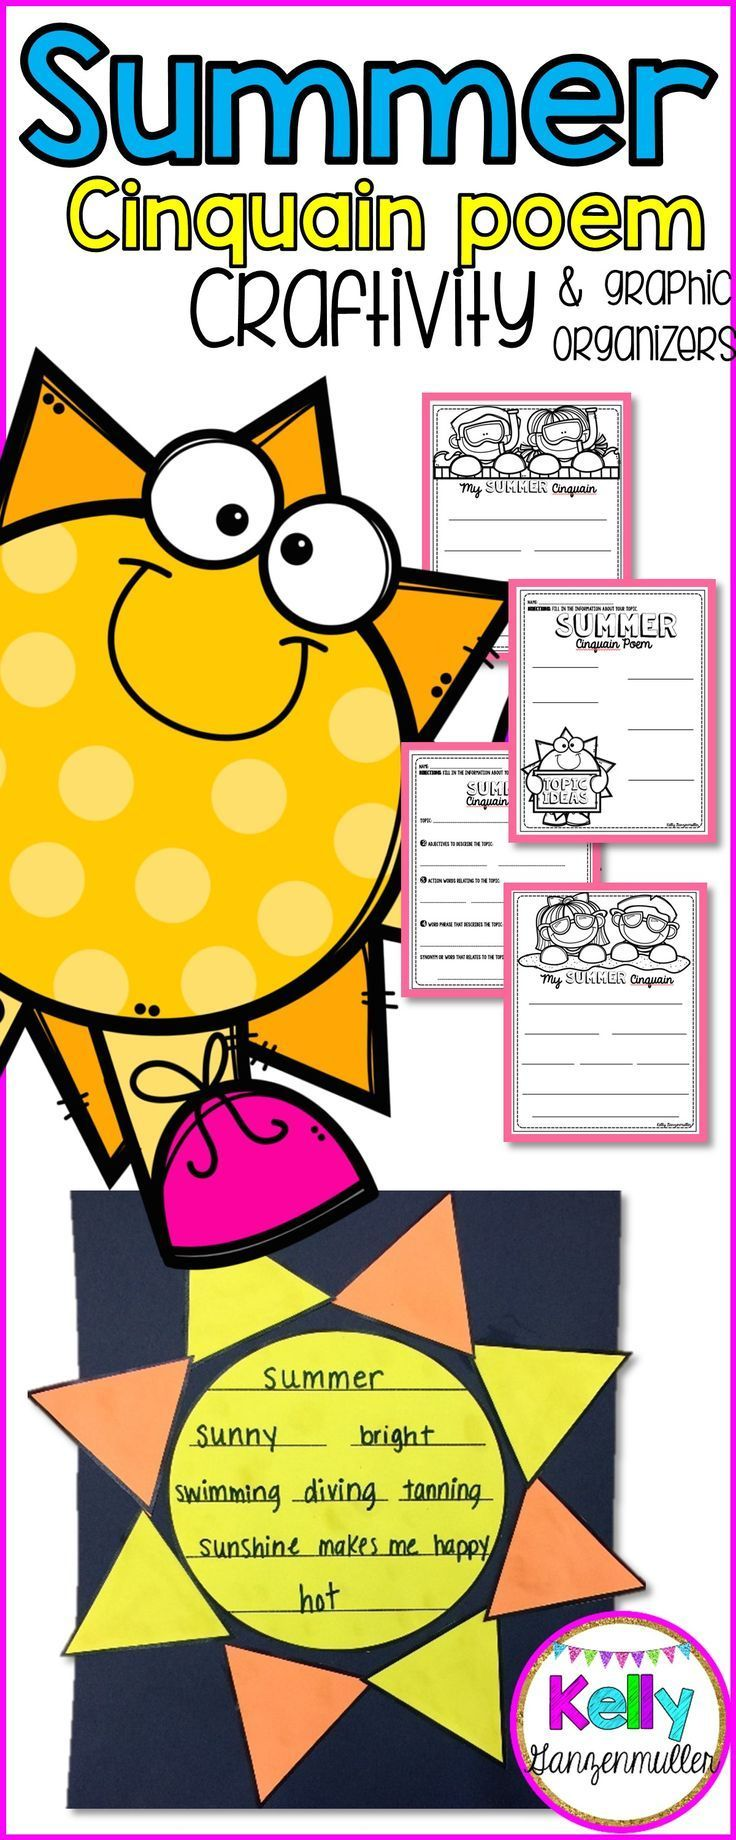 Bask in the summer sunshine with this adorable summer sun poem craftivity. Included in this packet are 3 graphic organizers to use for pre-writing and brainstorming ideas for their cinquain poem. Craftivity is perfect for end of the school year bulletin board and hallway displays.  Included:  *Brainstorming Topic Ideas Graphic Organizer. *Graphic Organizer to produce the poem. *Two writing templates with different designs for writing your poem. *Sun Craftivity templates.